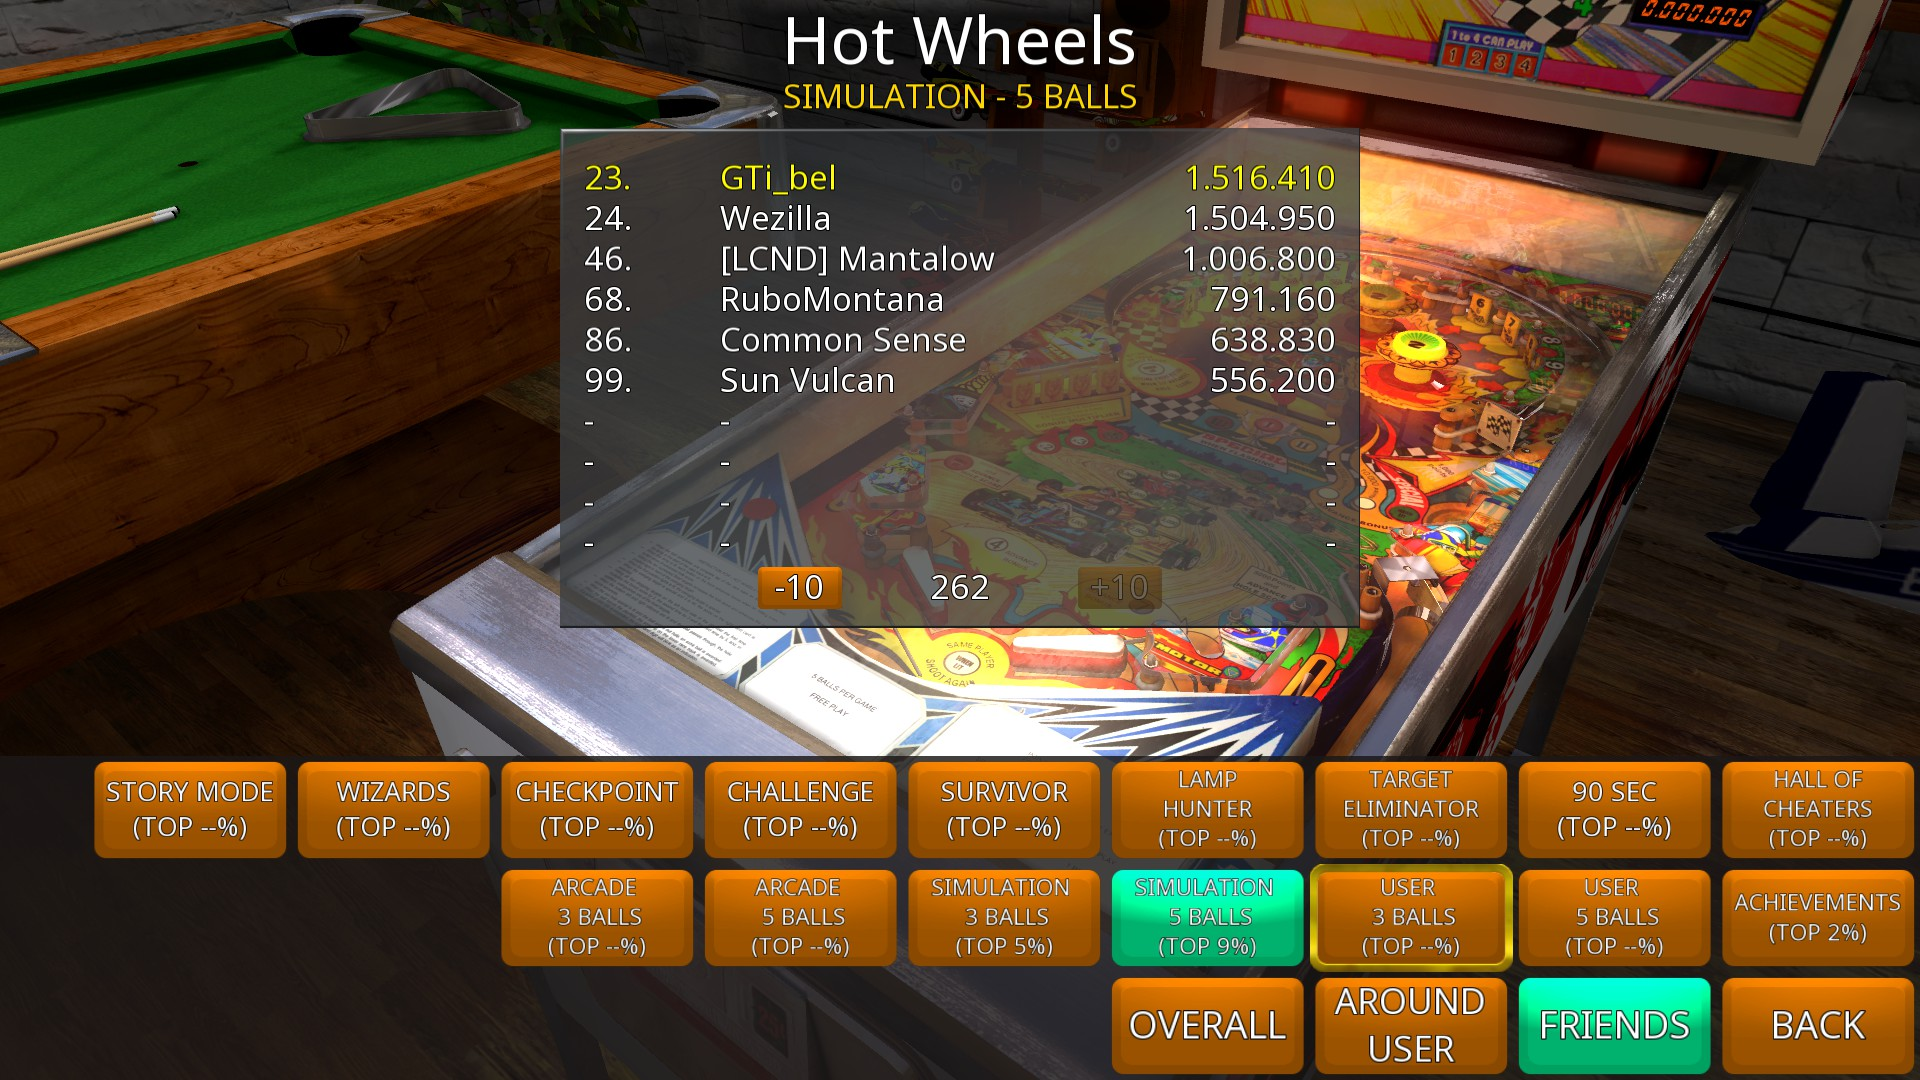 GTibel: Zaccaria Pinball: Hot Wheels [5 balls] (PC) 1,516,410 points on 2018-08-16 03:39:07